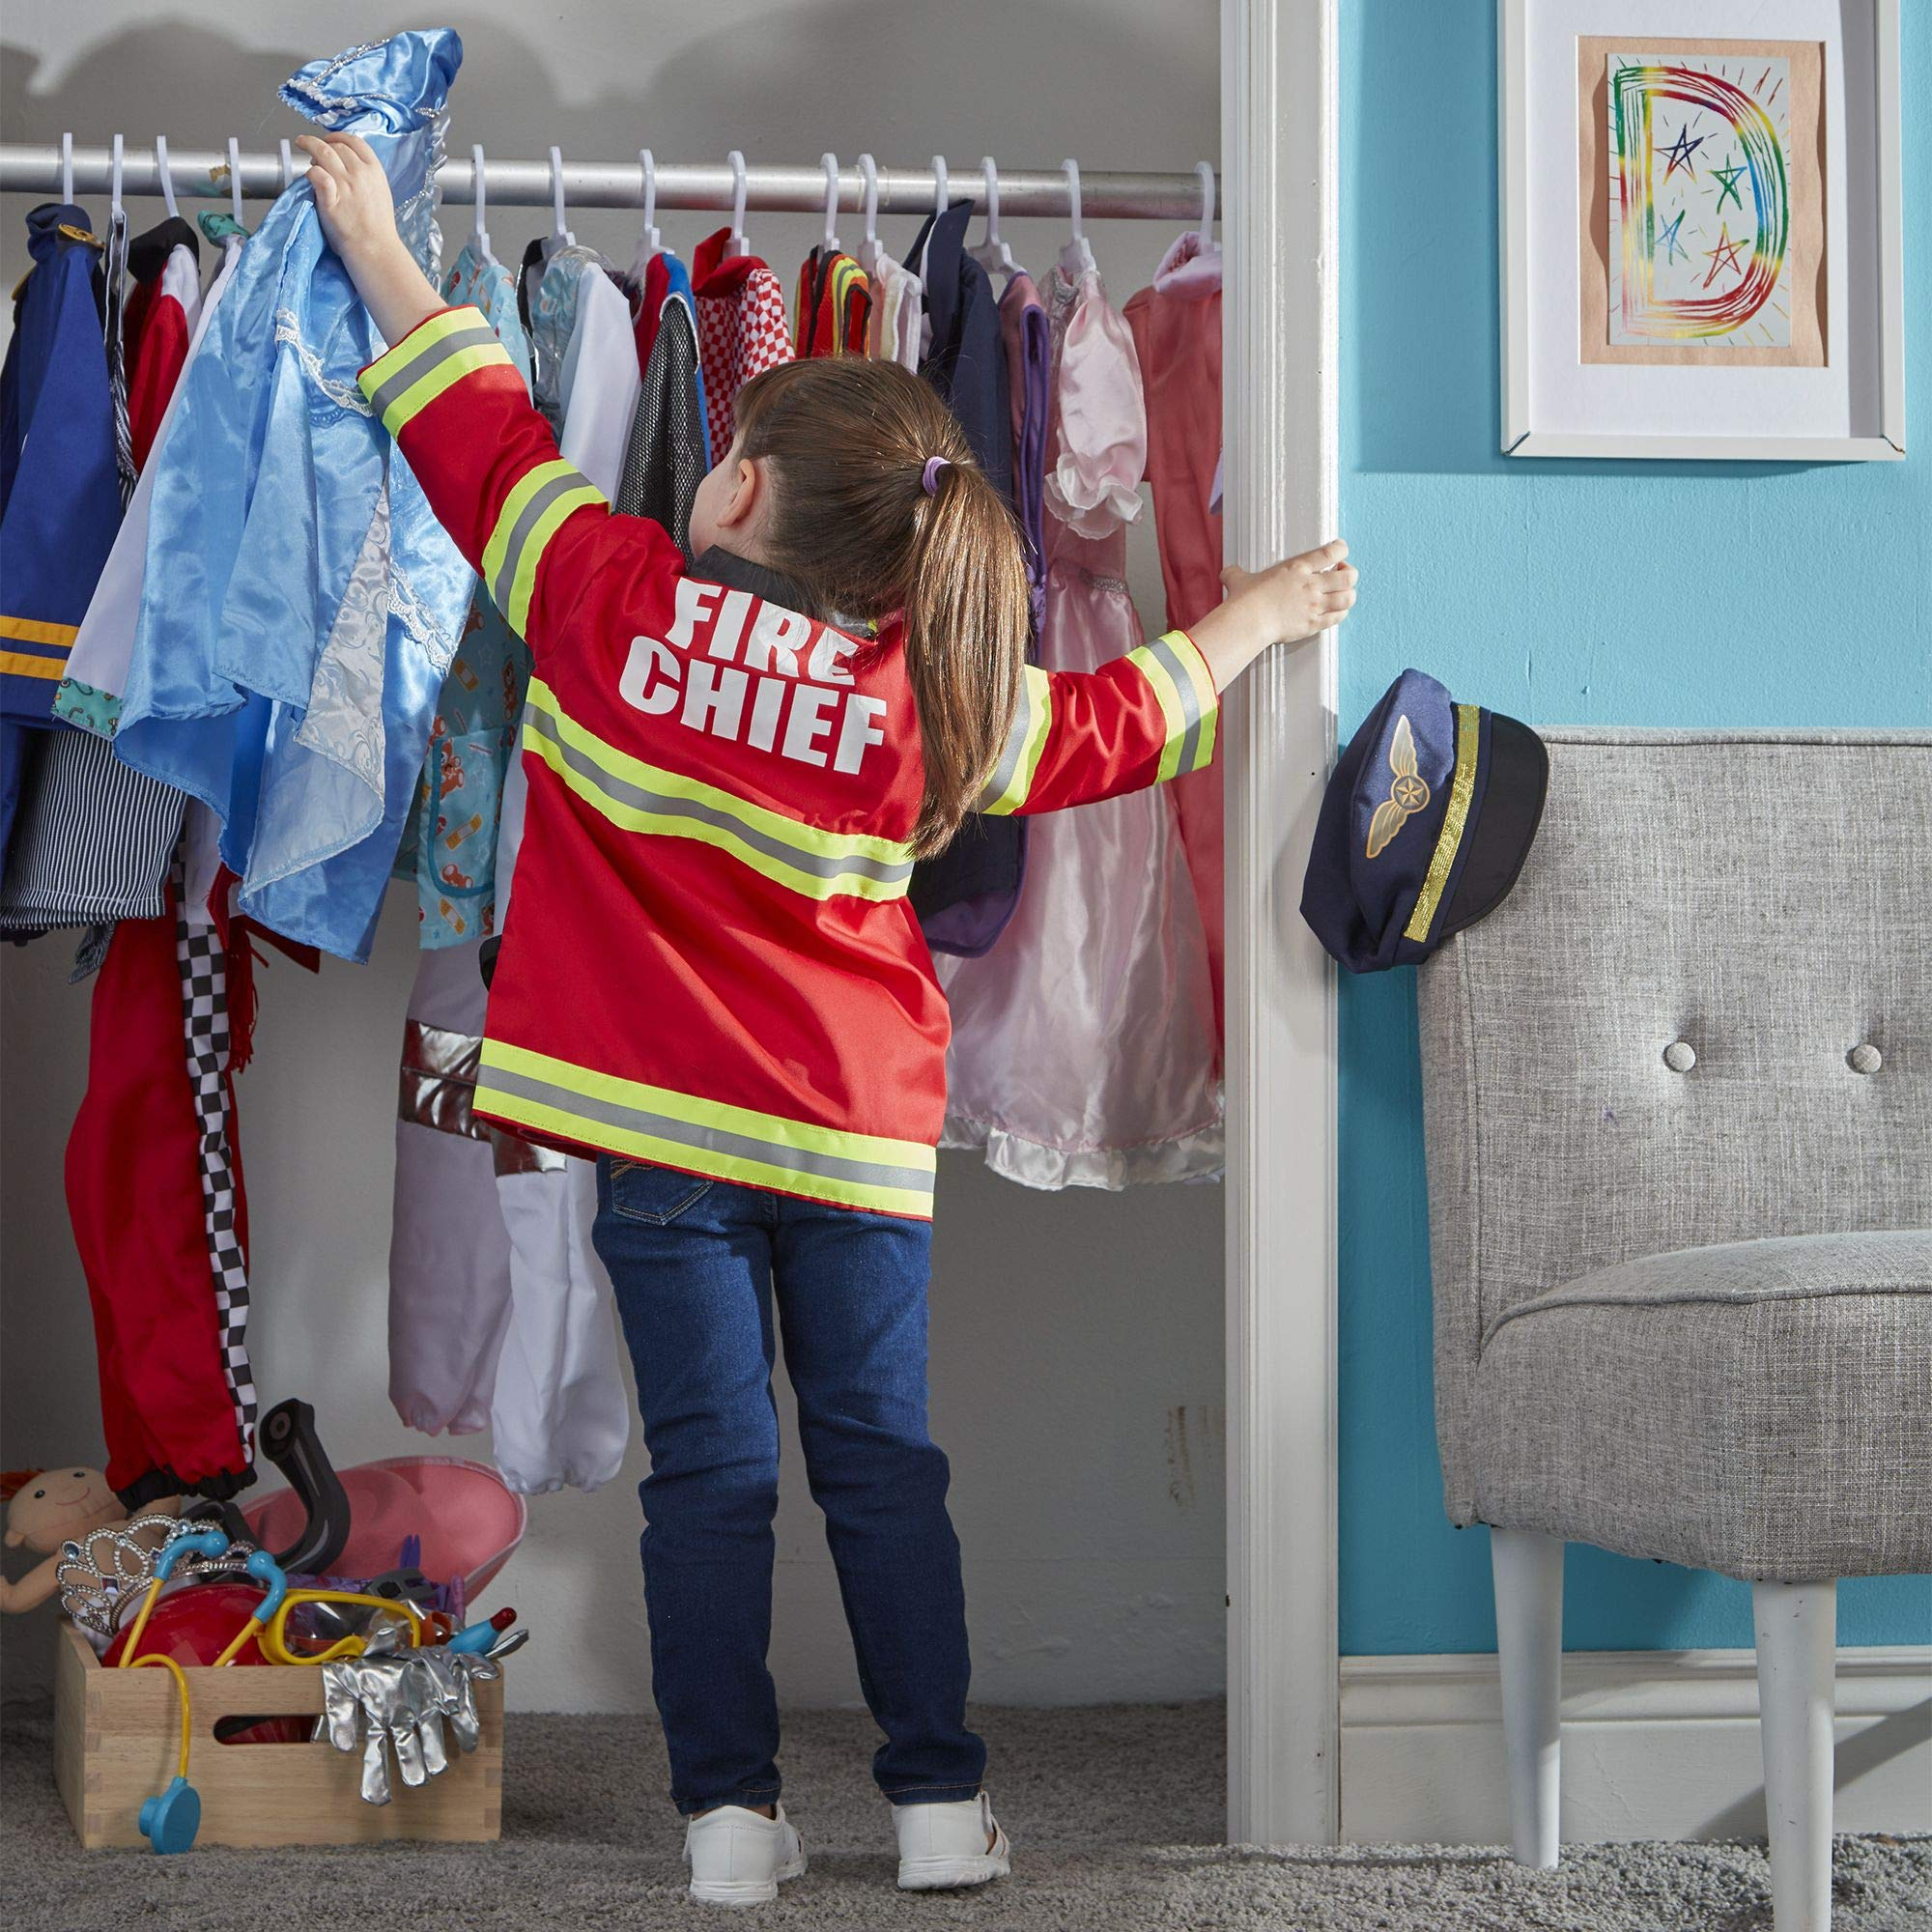 Melissa & Doug Fire Chief Role Play Costume Set, Pretend Play, Frustration-Free Packaging, Bright Red, 17.5'' H x 24'' W x 2'' L by Melissa & Doug (Image #2)